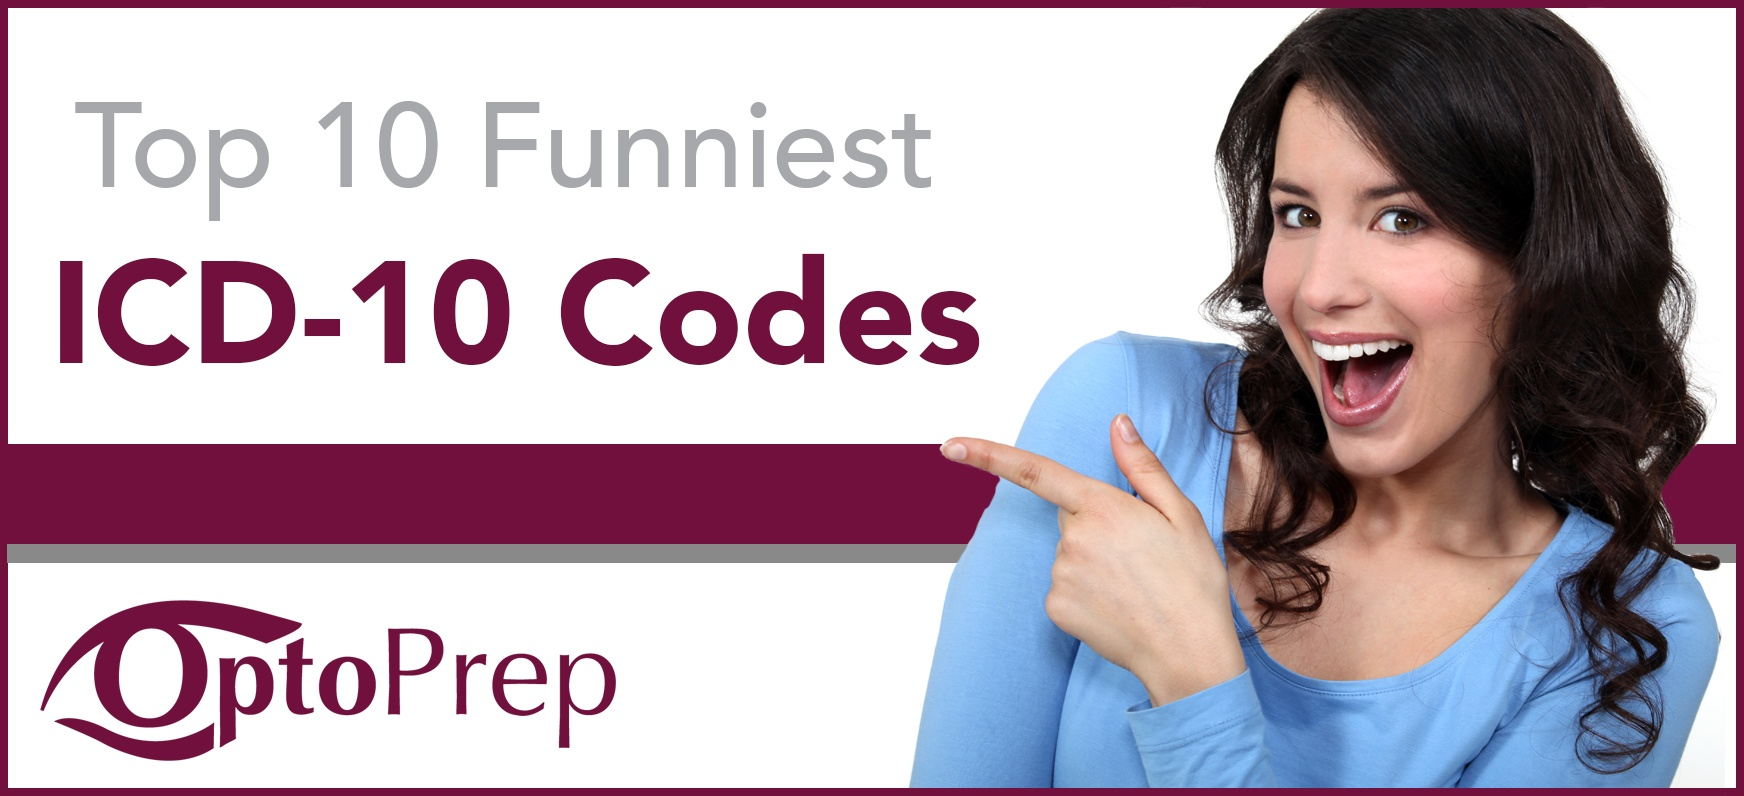 Top 10 Funniest ICD-10 Codes